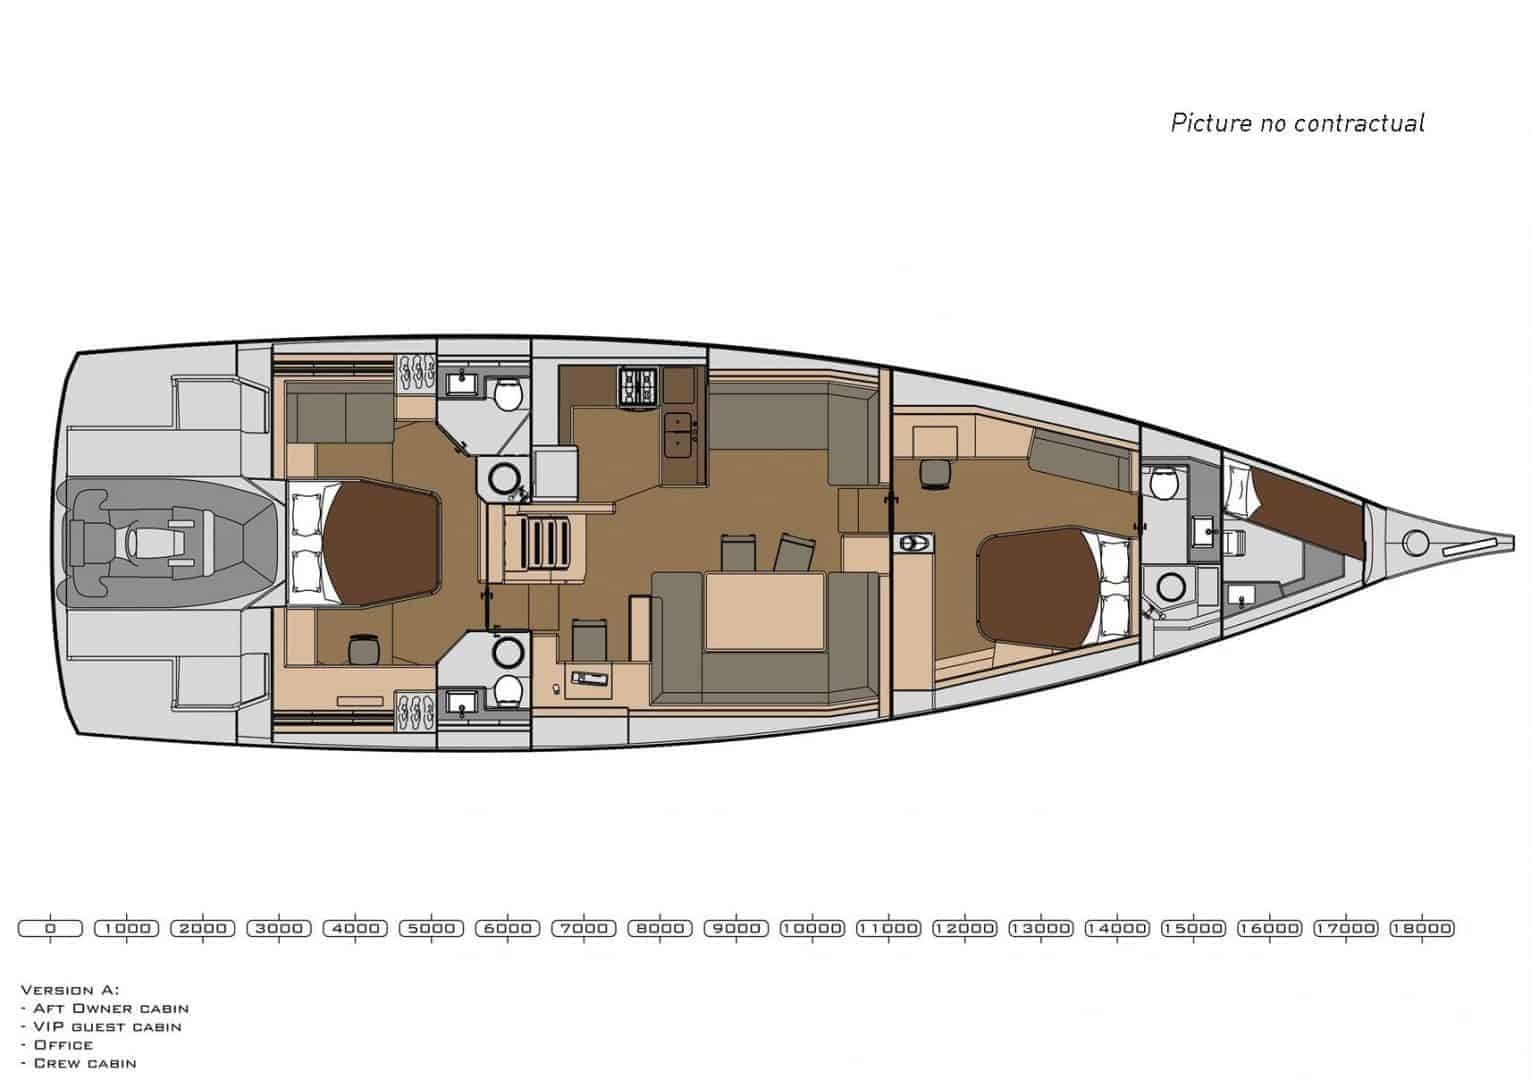 2 cabin layout of the Dufour Exclusive 63